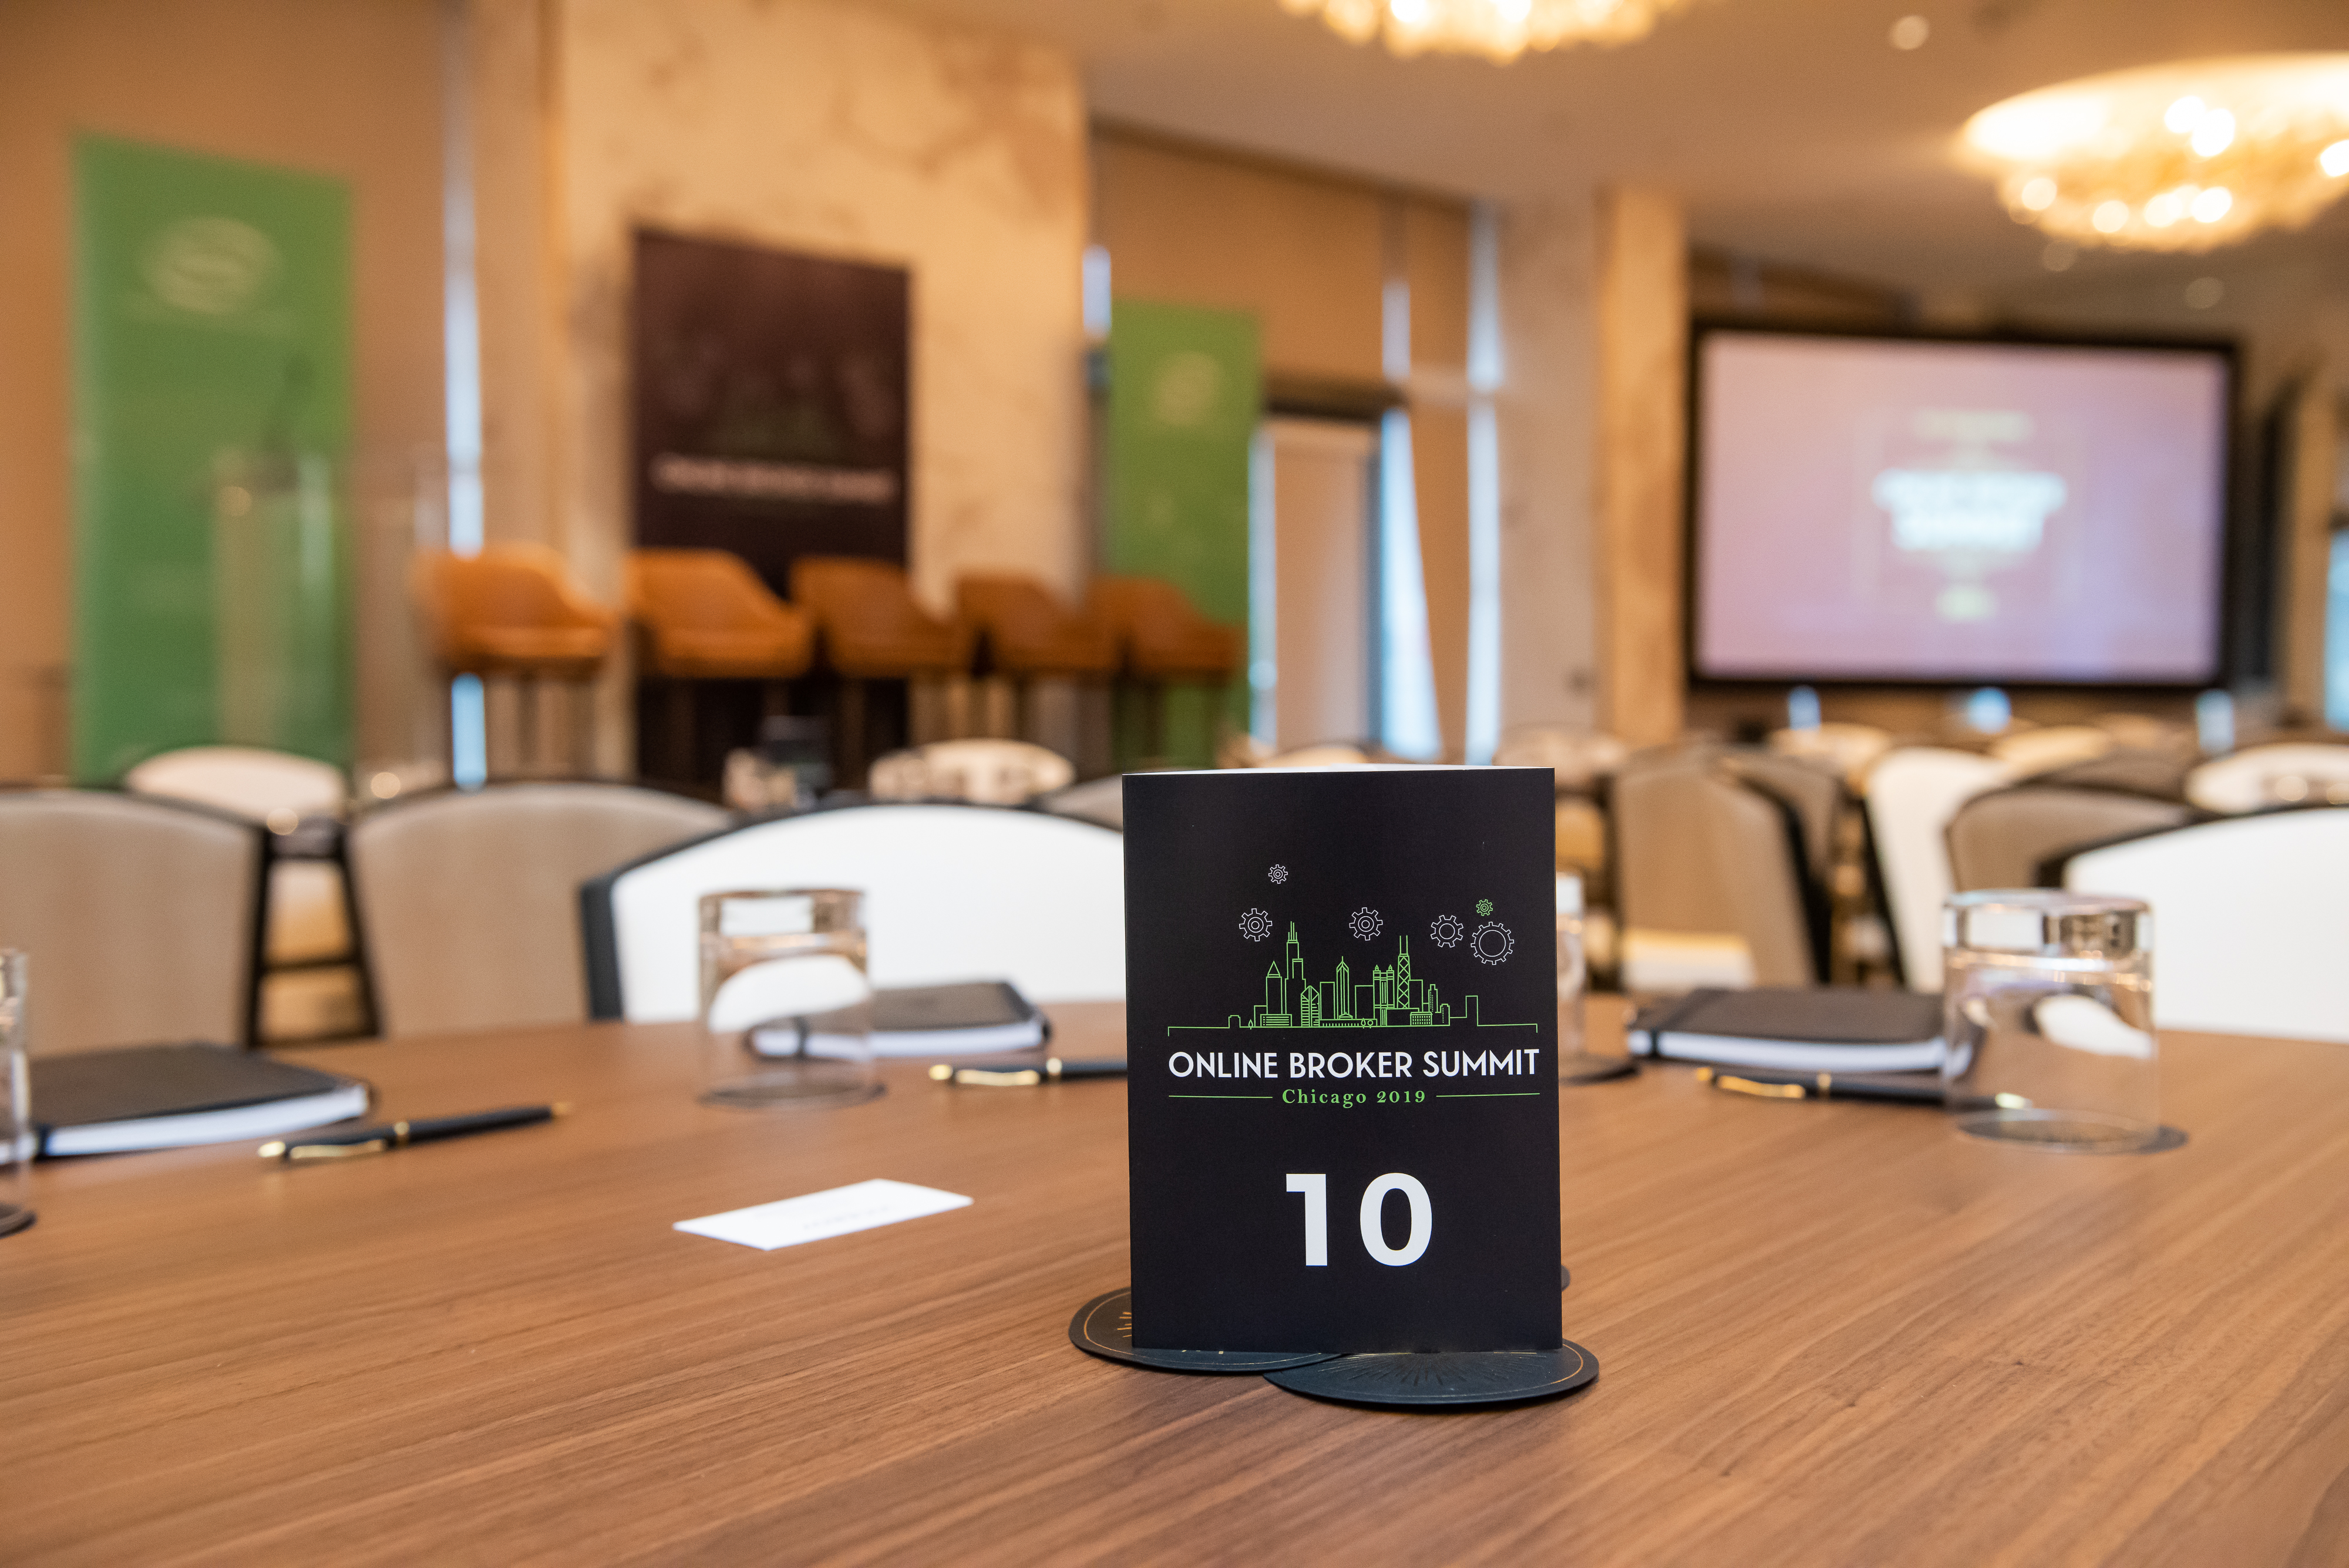 190404 - Online Trading Summit - mark campbell photography-1